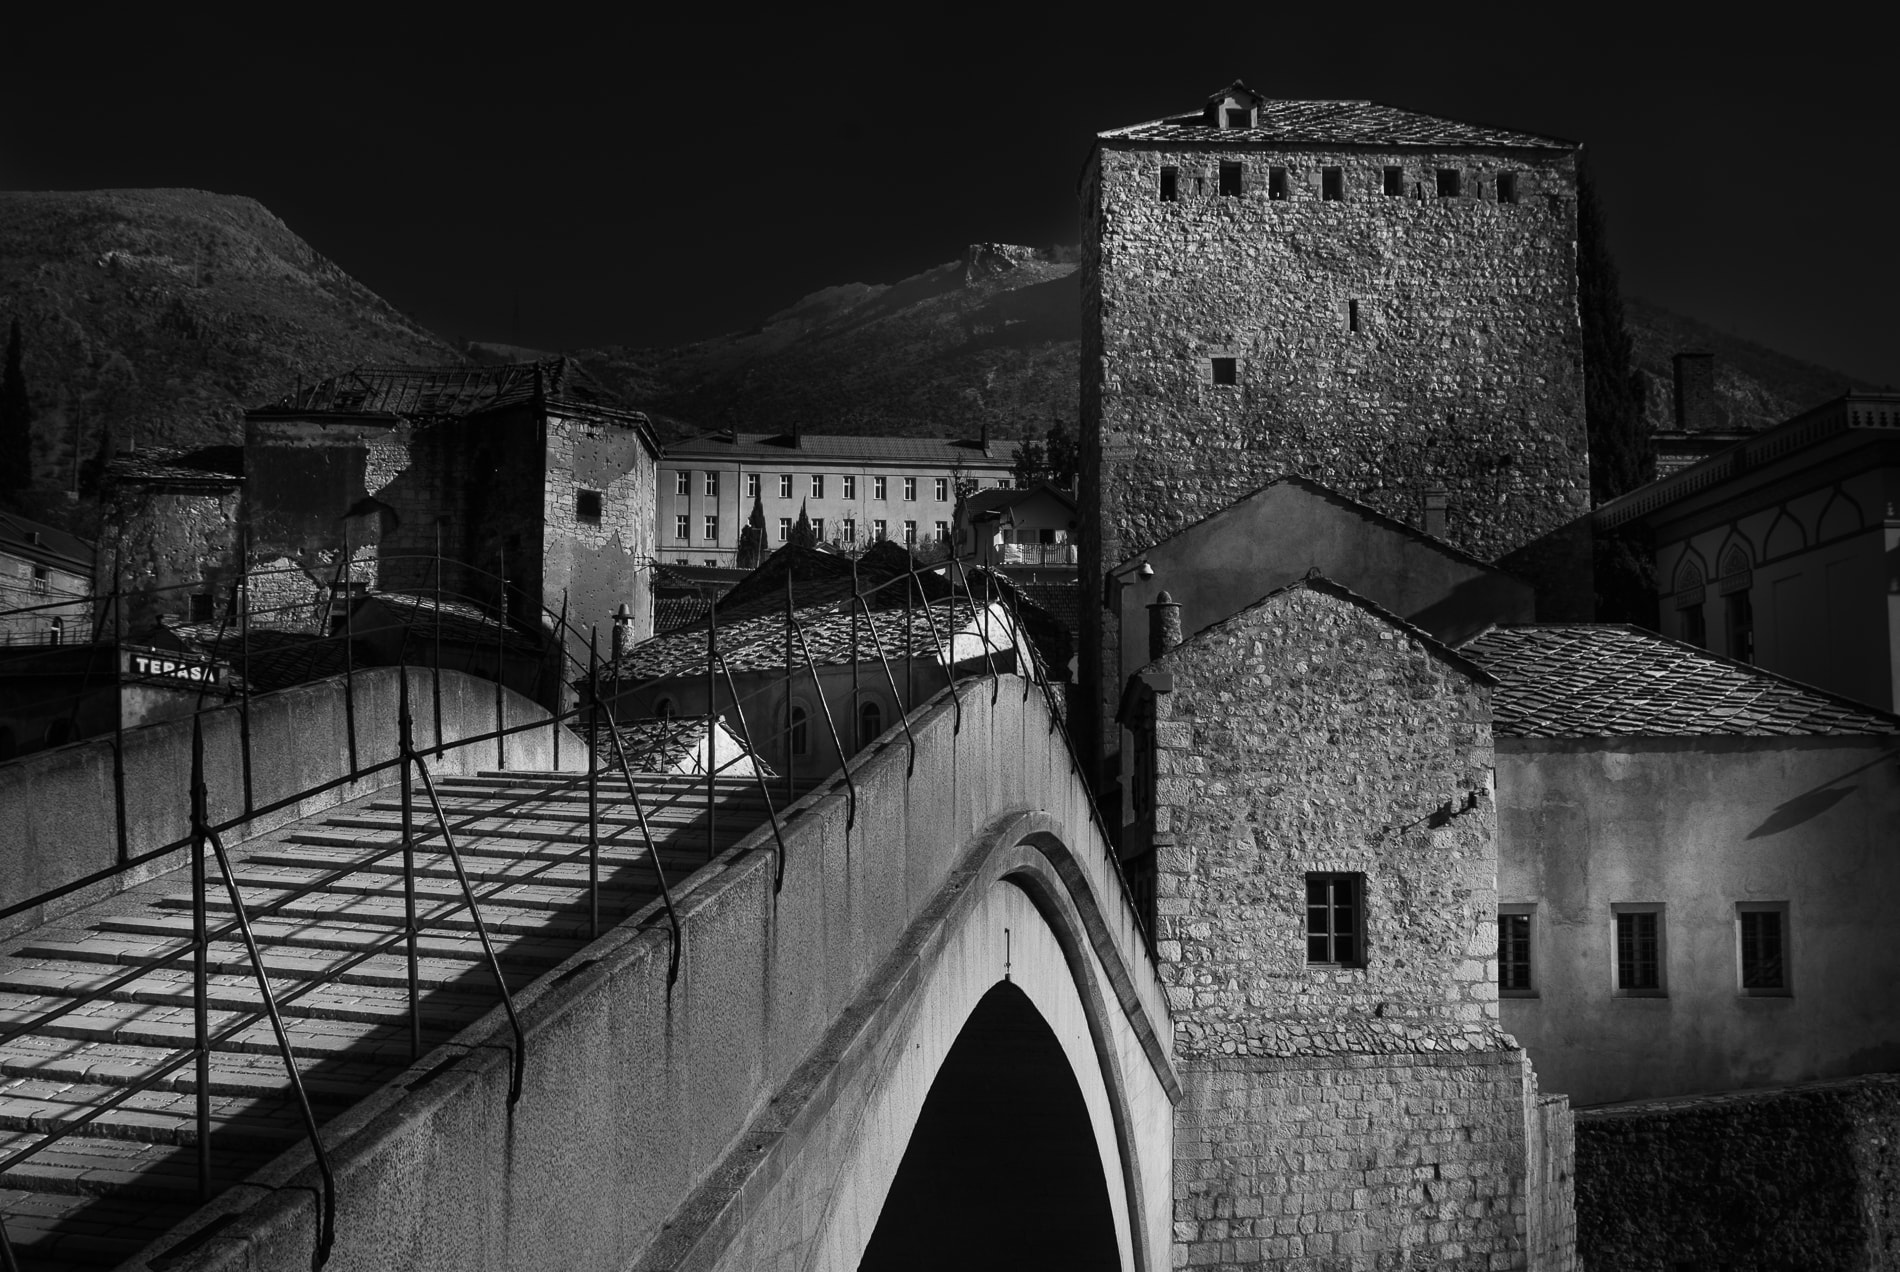 Black and white photograph of Looking across the 'old bridge' or Stari Most, Mostar, Bosnia and Herzegovina